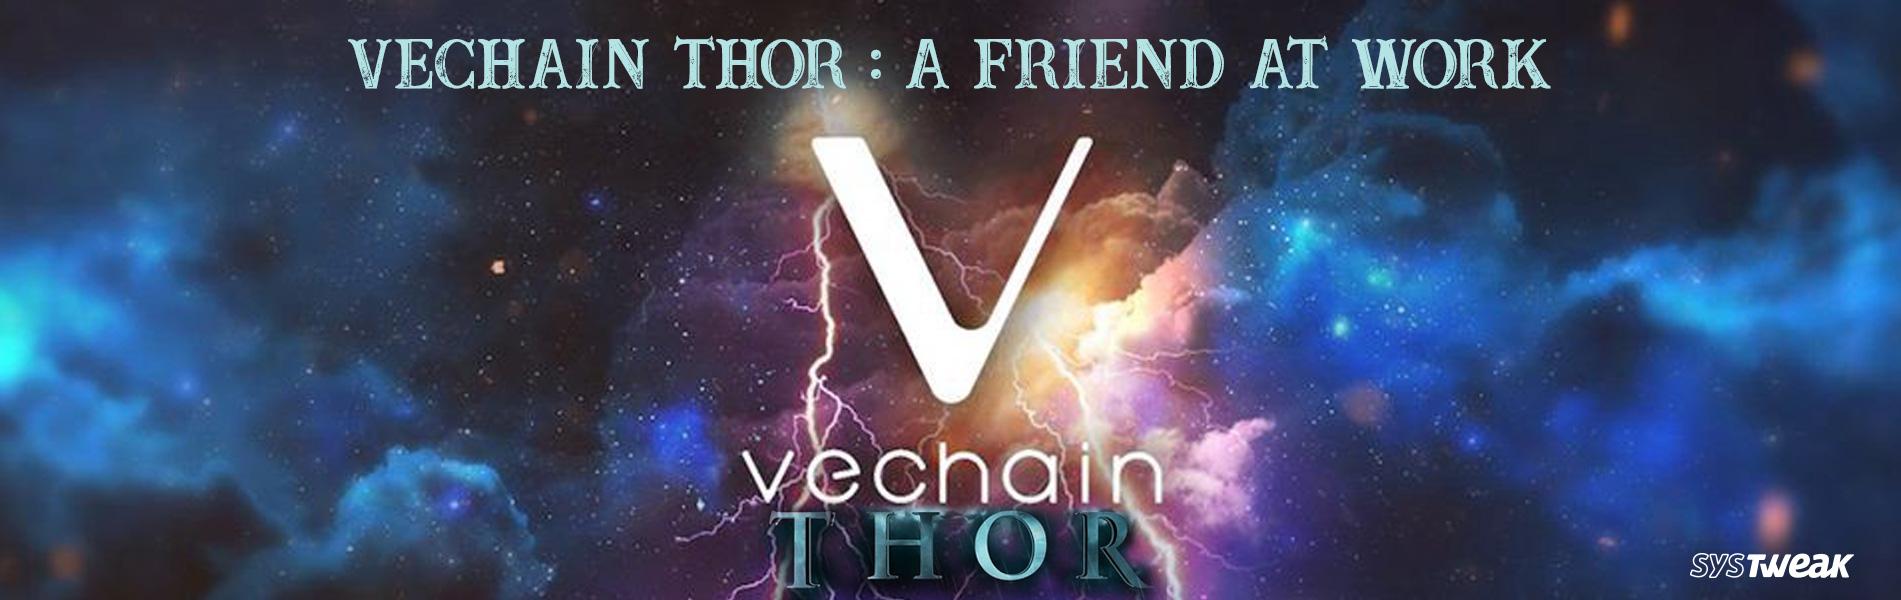 VeChain Thor: THOR Power To The VET